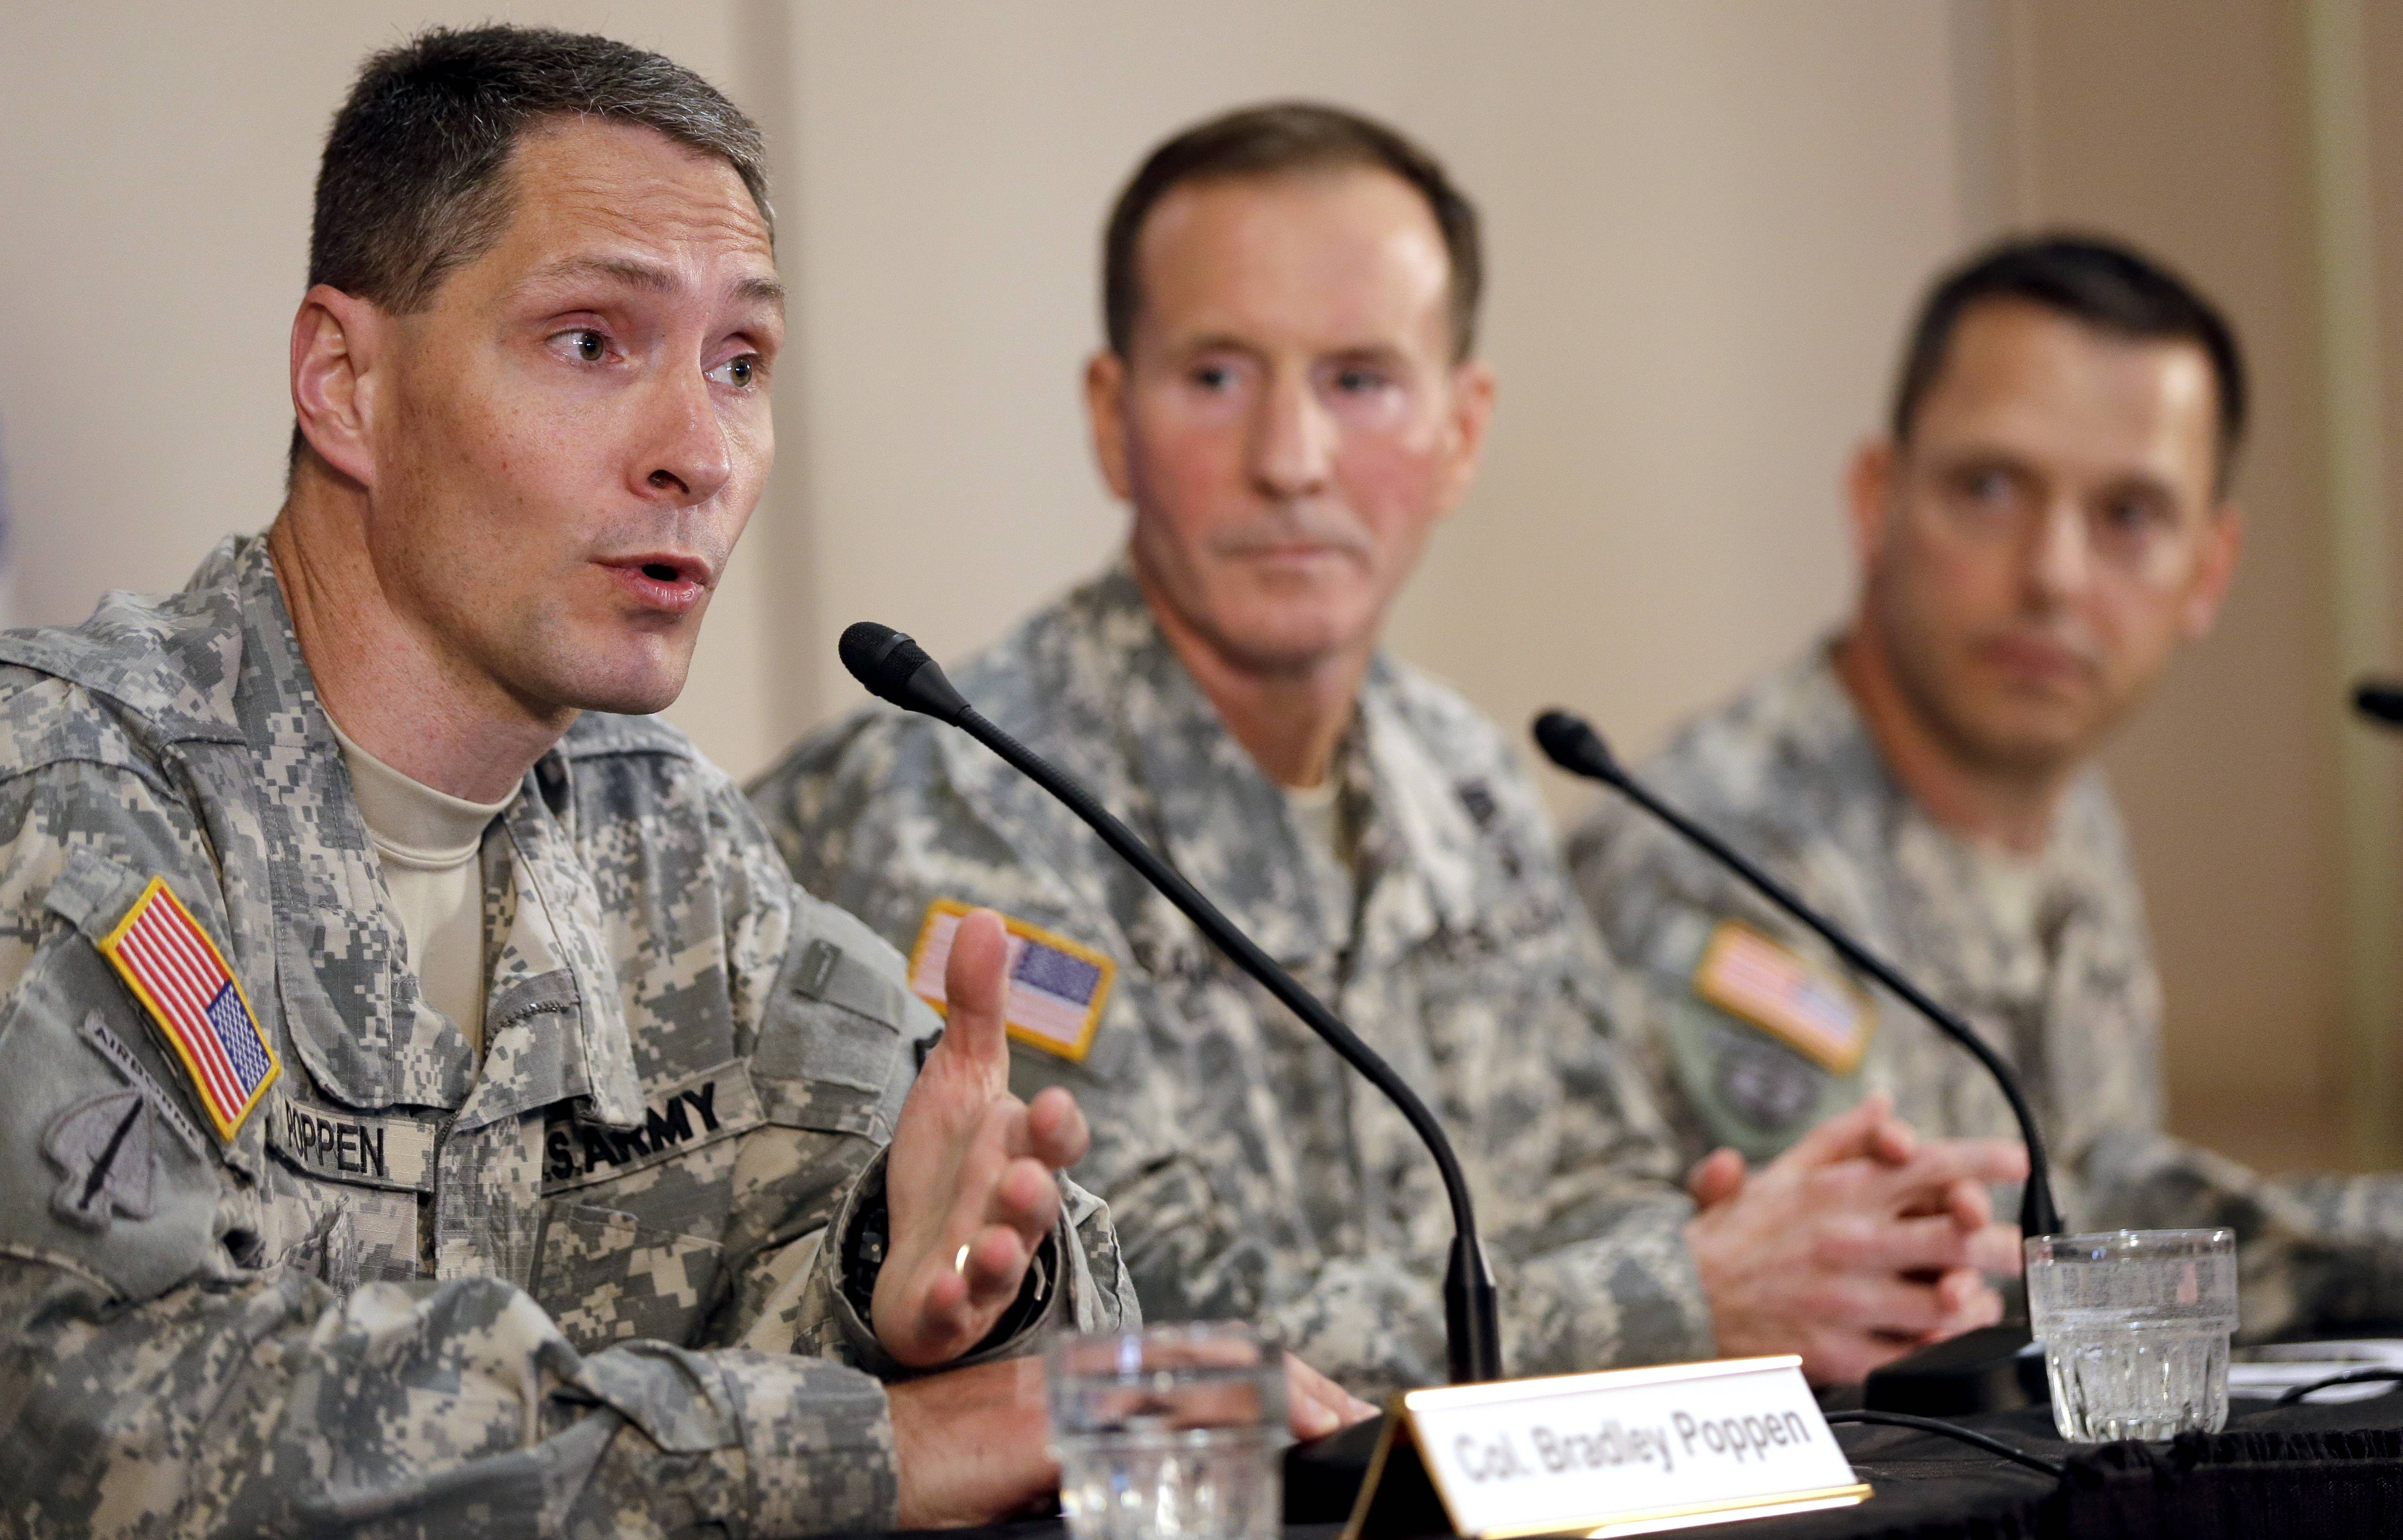 Col. Bradley Poppen, left, answers a question Friday during a news conference regarding Sgt. Bowe Bergdahl in San Antonio, Texas. Bergdahl, the Army sergeant who has been recovering in Germany after five years as a Taliban captive, returned to the United States early Friday to continue his medical treatment at Brooke Army Medical Center. Joining Poppen are U.S. Army South Commander Maj. Gen. Joseph P. DiSalvo, center, and Col. Ronald Wool.